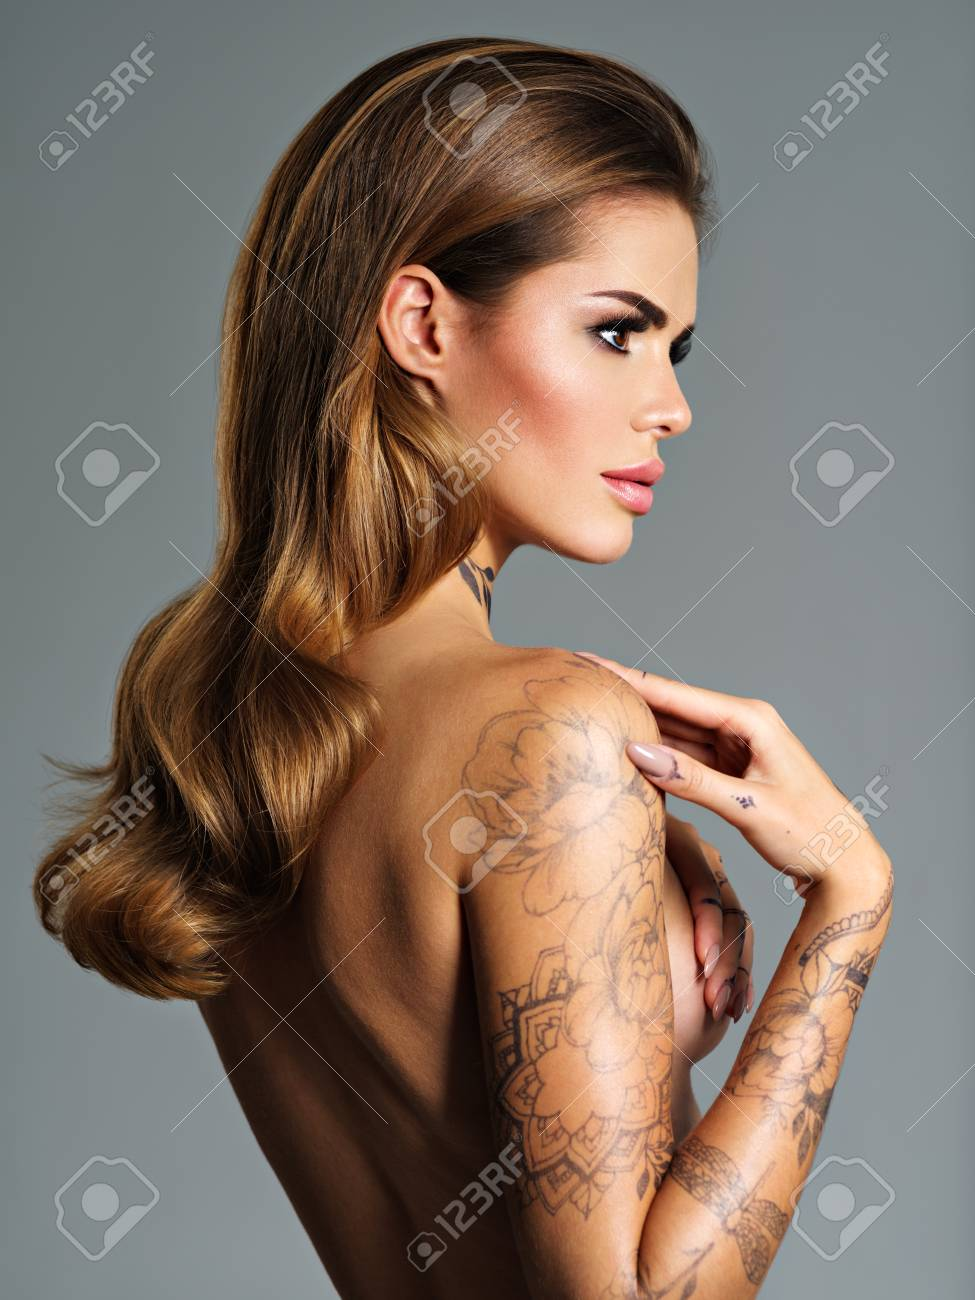 Tattoo of woman sexy